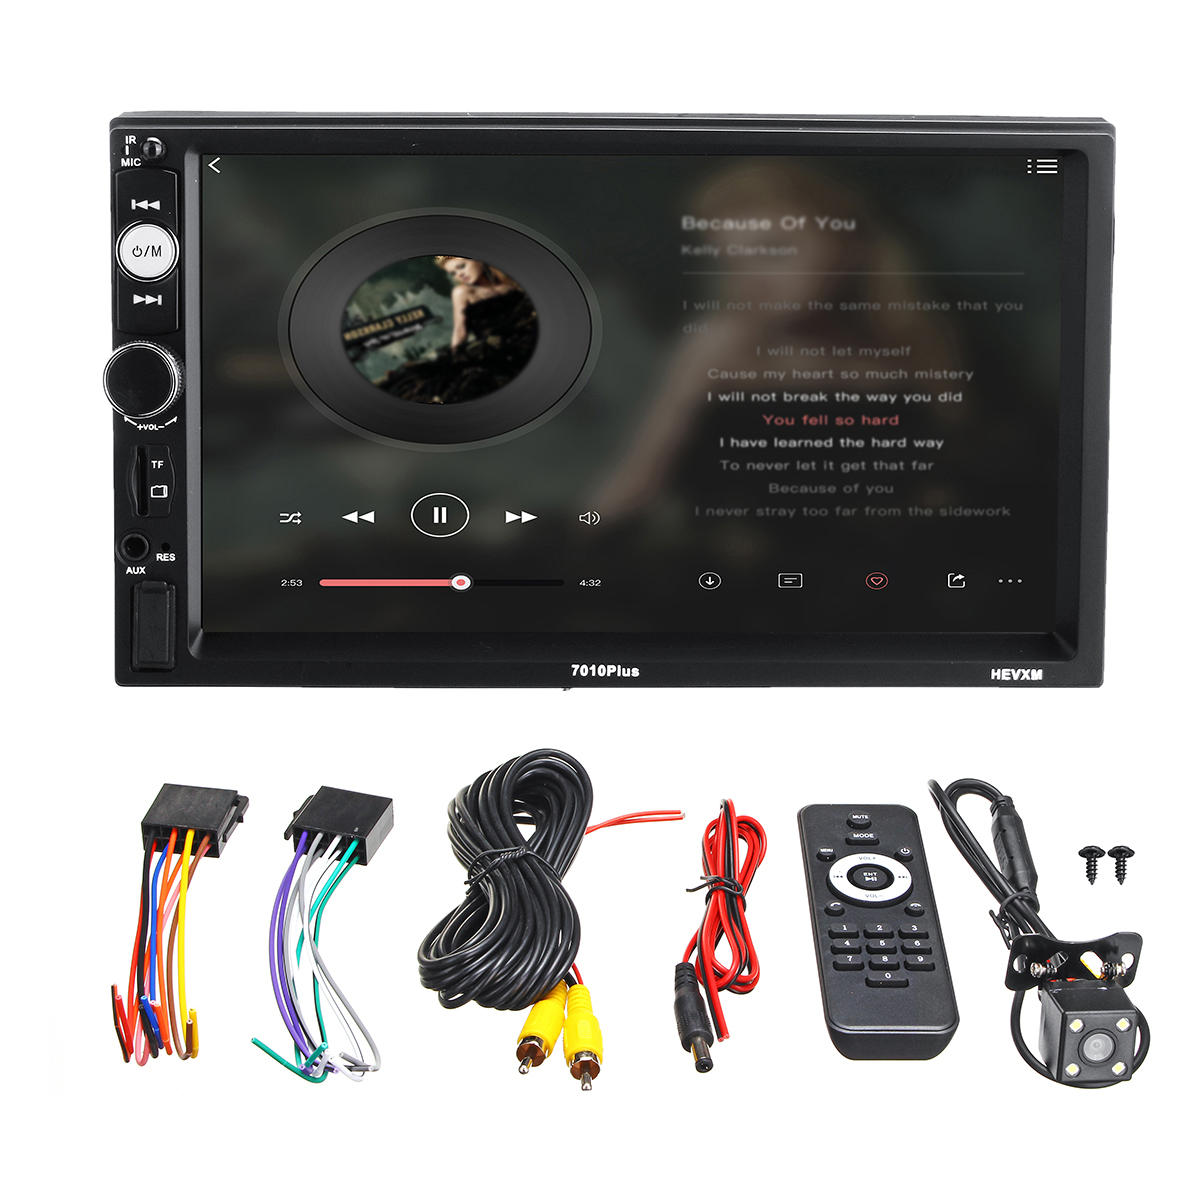 7010Plus 7 Inch 2 Din Touch Car MP5 Player bluetooth Stereo FM Radio USB TF AUX